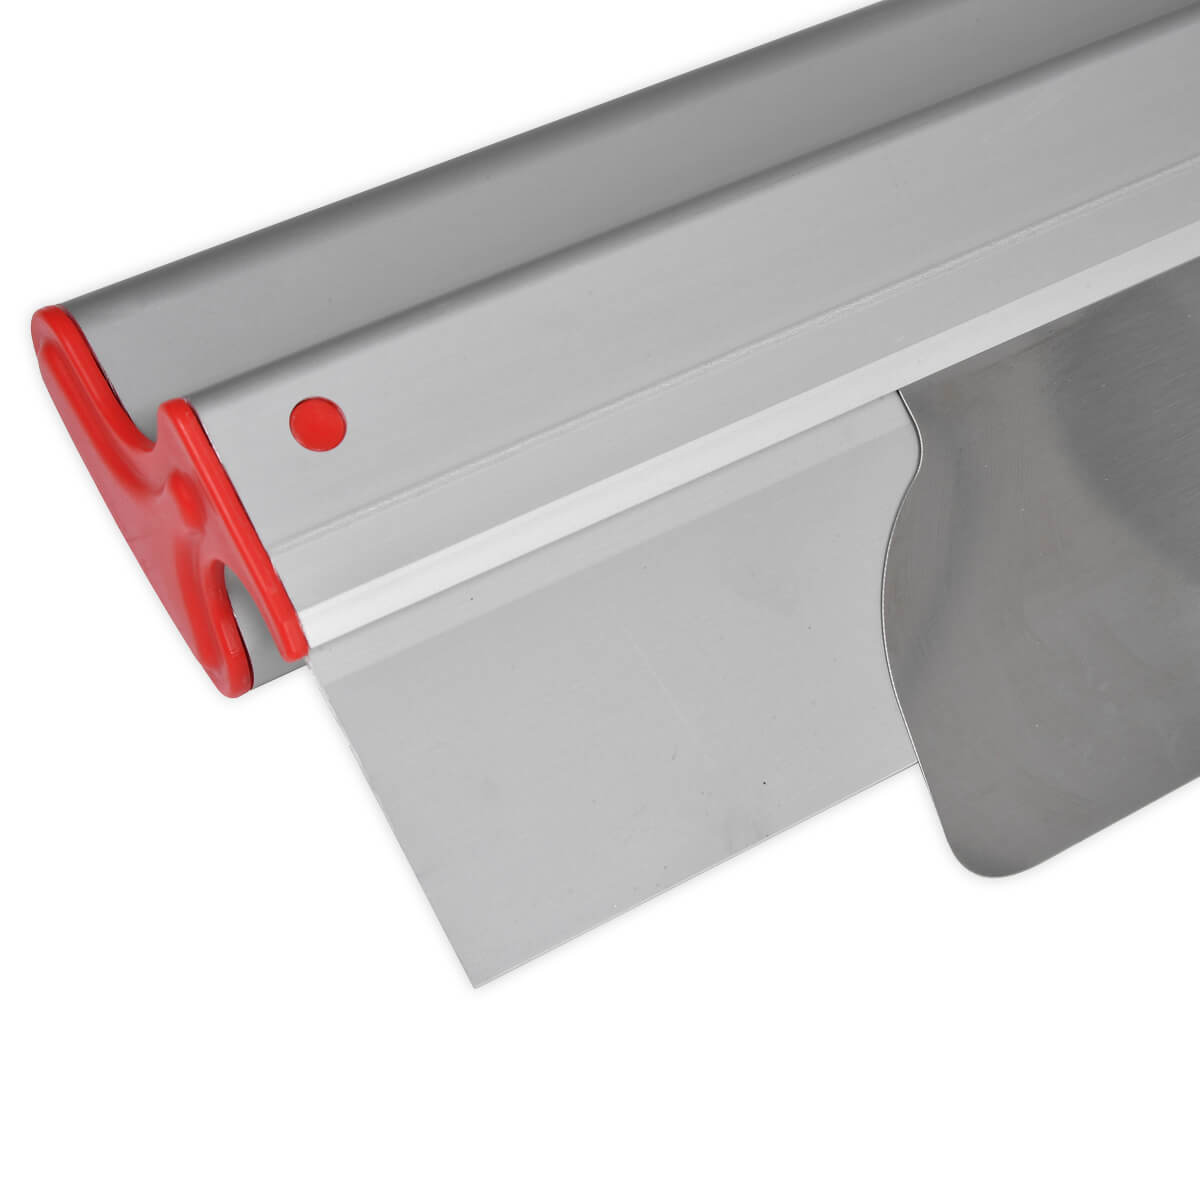 You can replace the 0.33mm precision stainless steel blade inserts in your LEVEL5 16-inch drywall finishing blades.